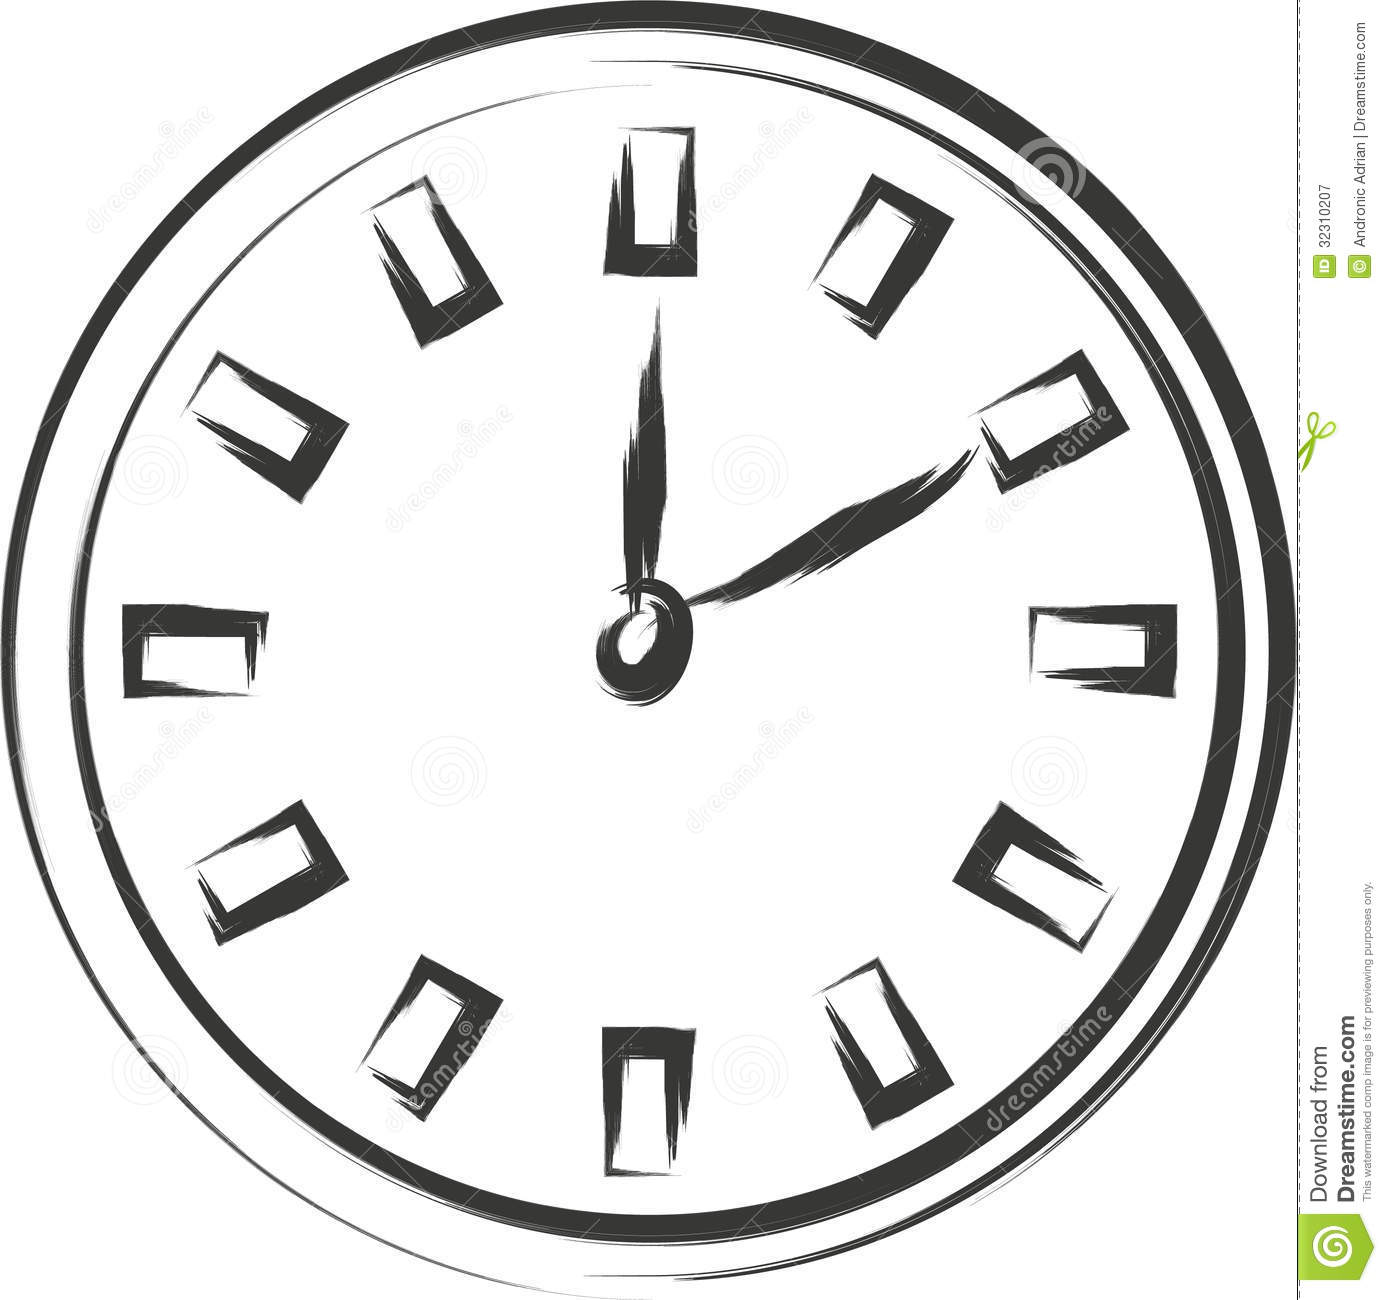 Clock Sketch Royalty Free Stock Photography